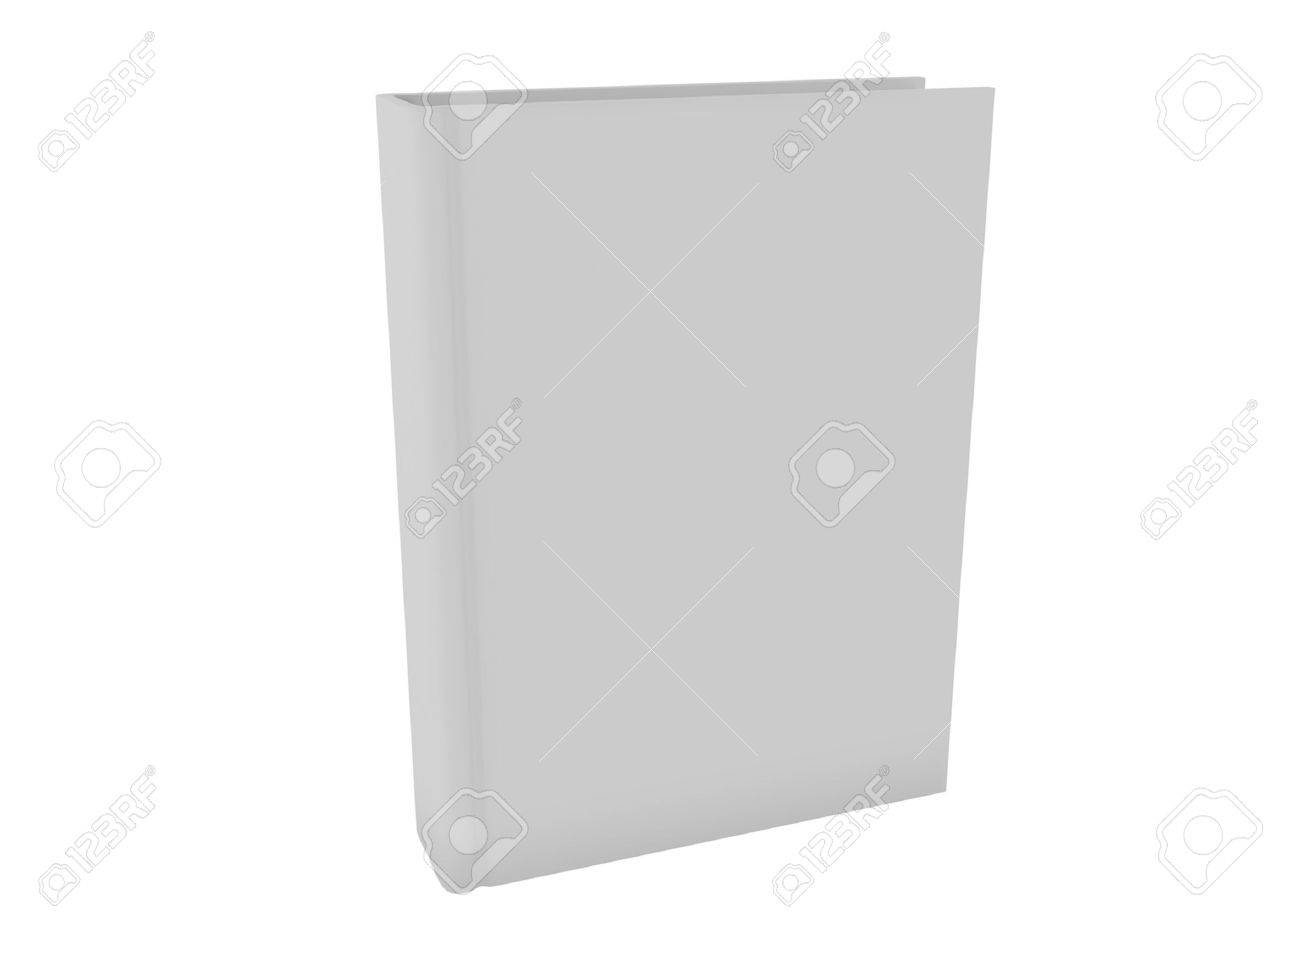 Blank White Book Stock Photo - 11563224